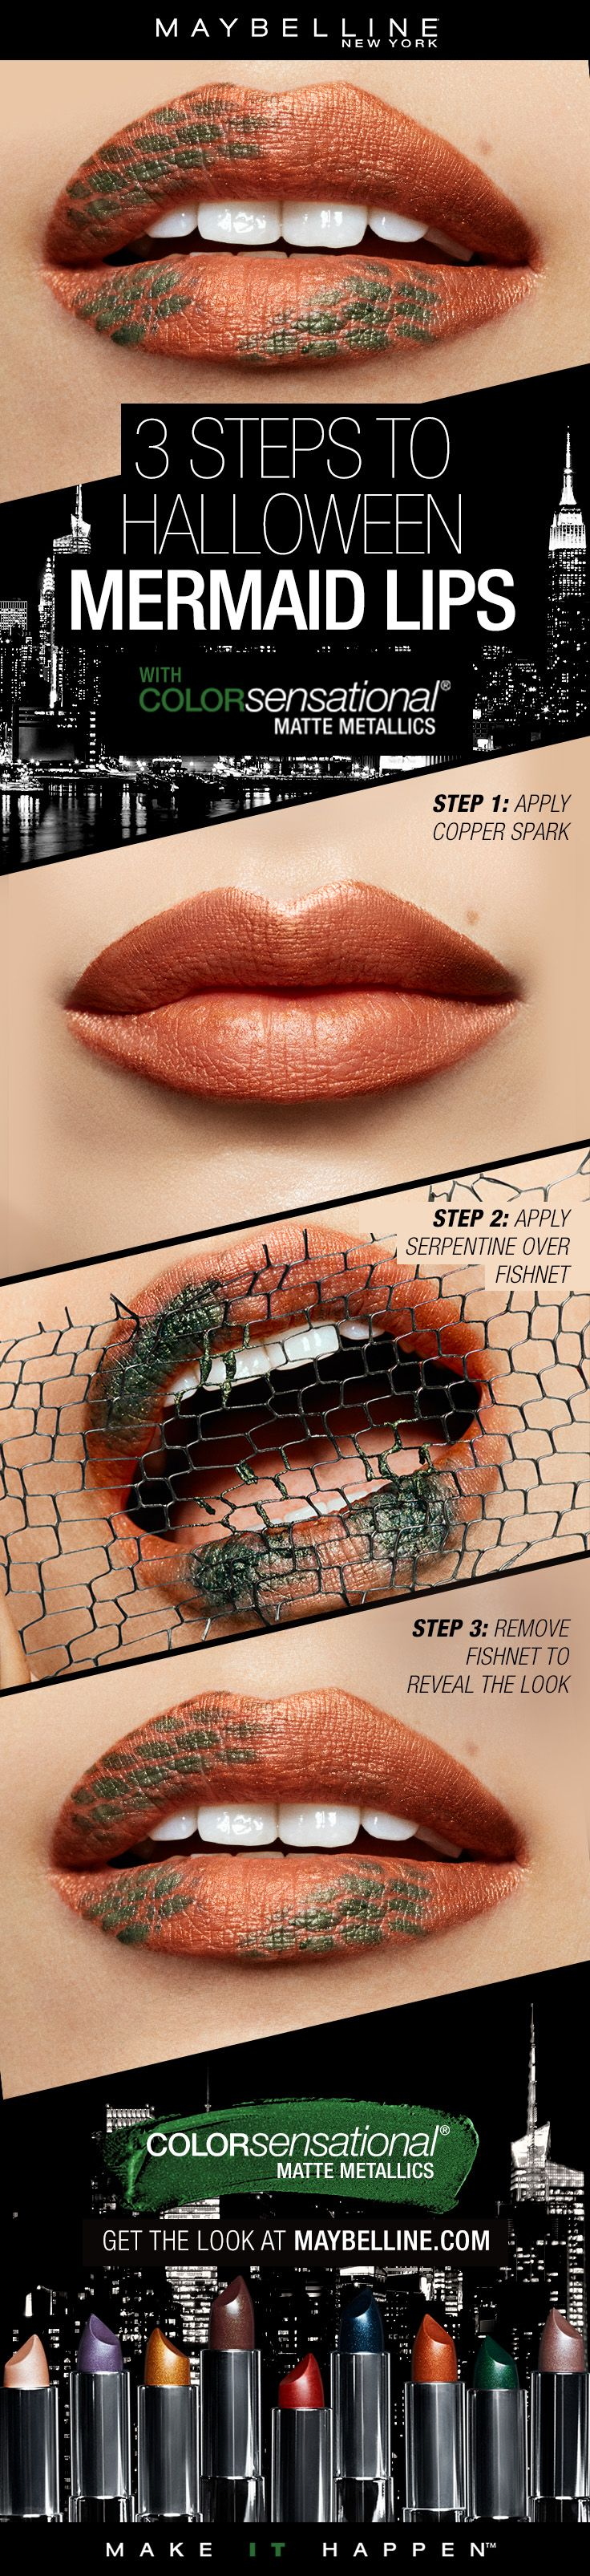 Want to try a mermaid makeup look without going FULL mermaid?  Try this easy Halloween makeup look featuring a mermaid lip art makeup look.  First, apply Matte Metallics Lipstick in 'Copper Spark' all over the lips.  Next, take fishnet and hold over the lips.  Apply 'Serpentine' over the fishnet to get a scale affect.